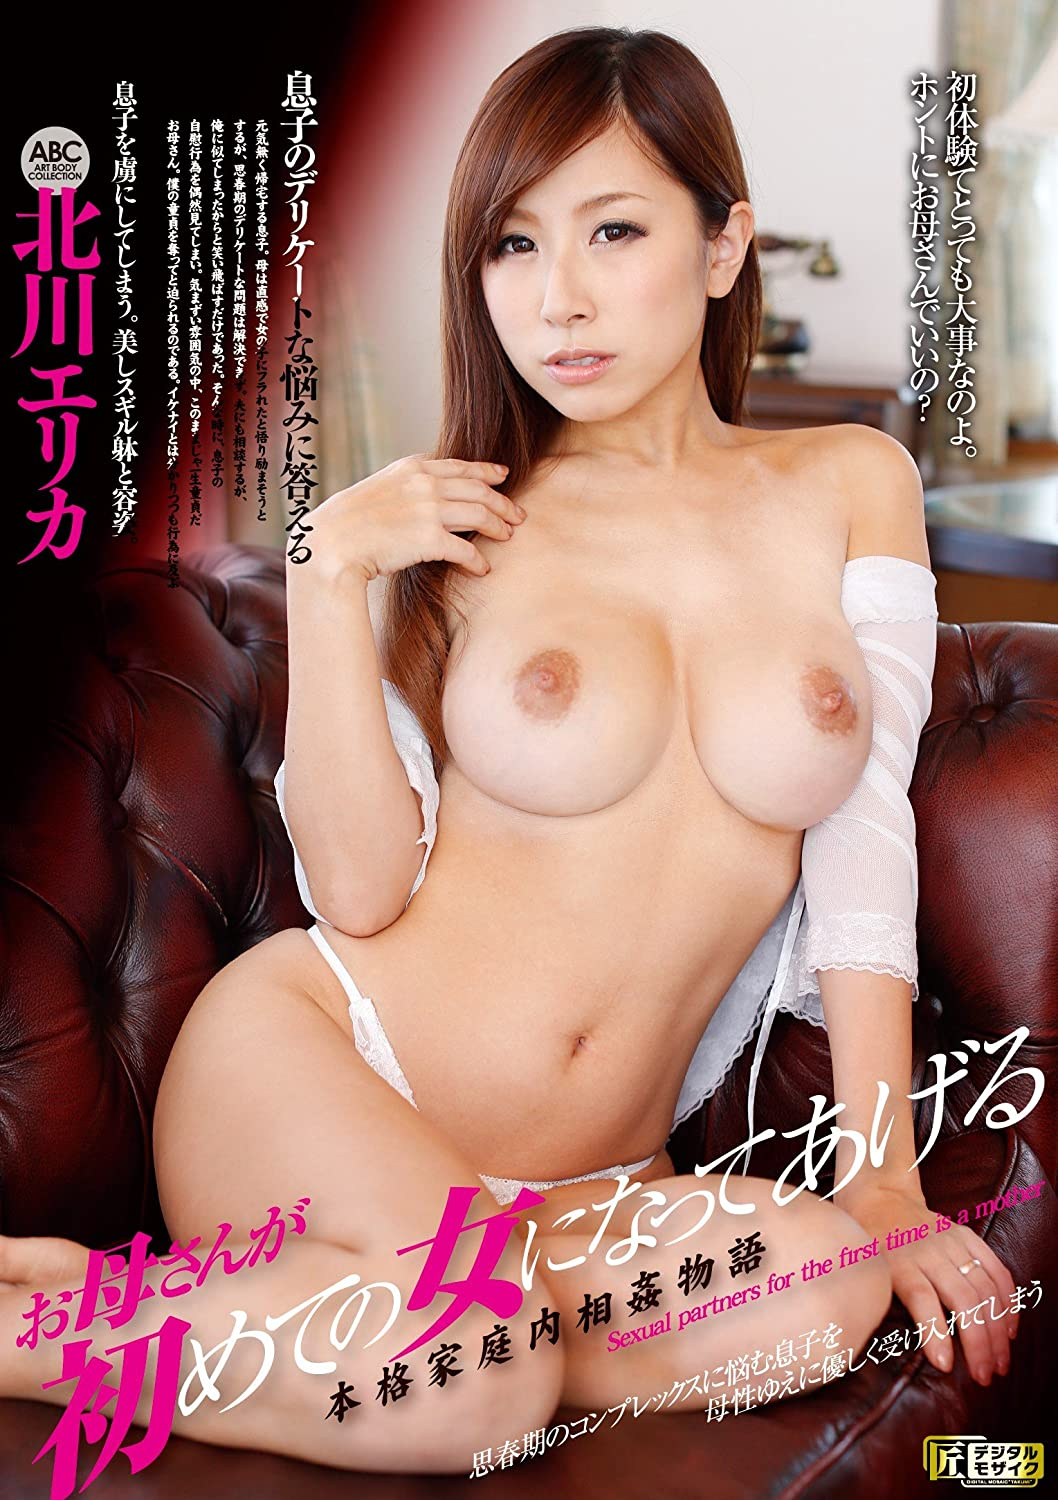 [OKSN-187] (English sub) True Home Fakecest Story Stepmommy Will Be Your First Erika Kitagawa